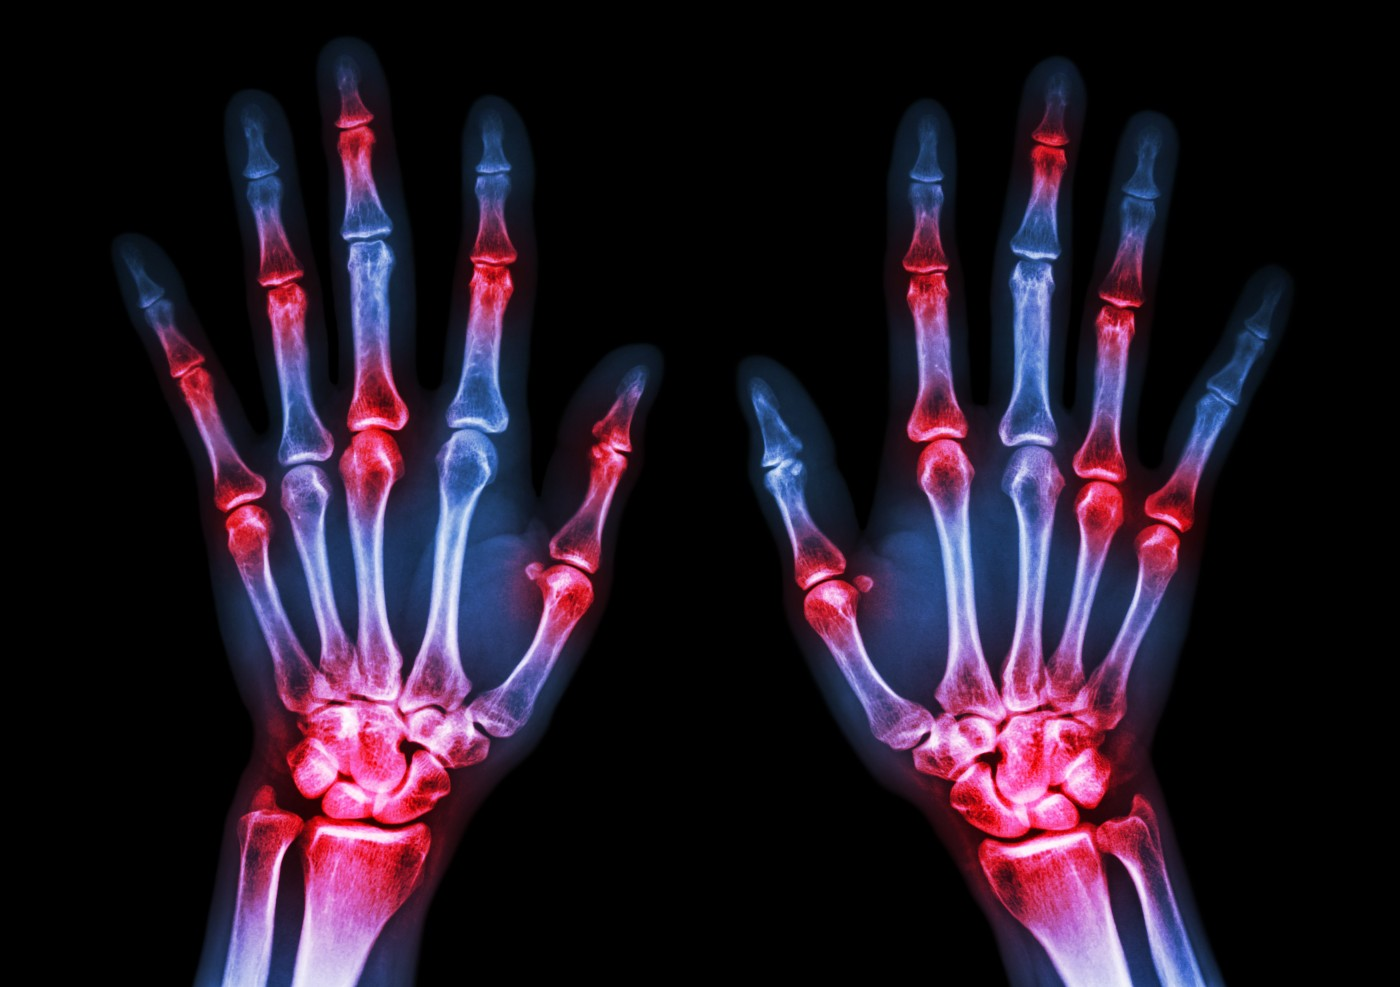 SWITCH-RA Study Tests Rituximab Versus TNF Inhibitor in Patients with Rheumatoid Arthritis